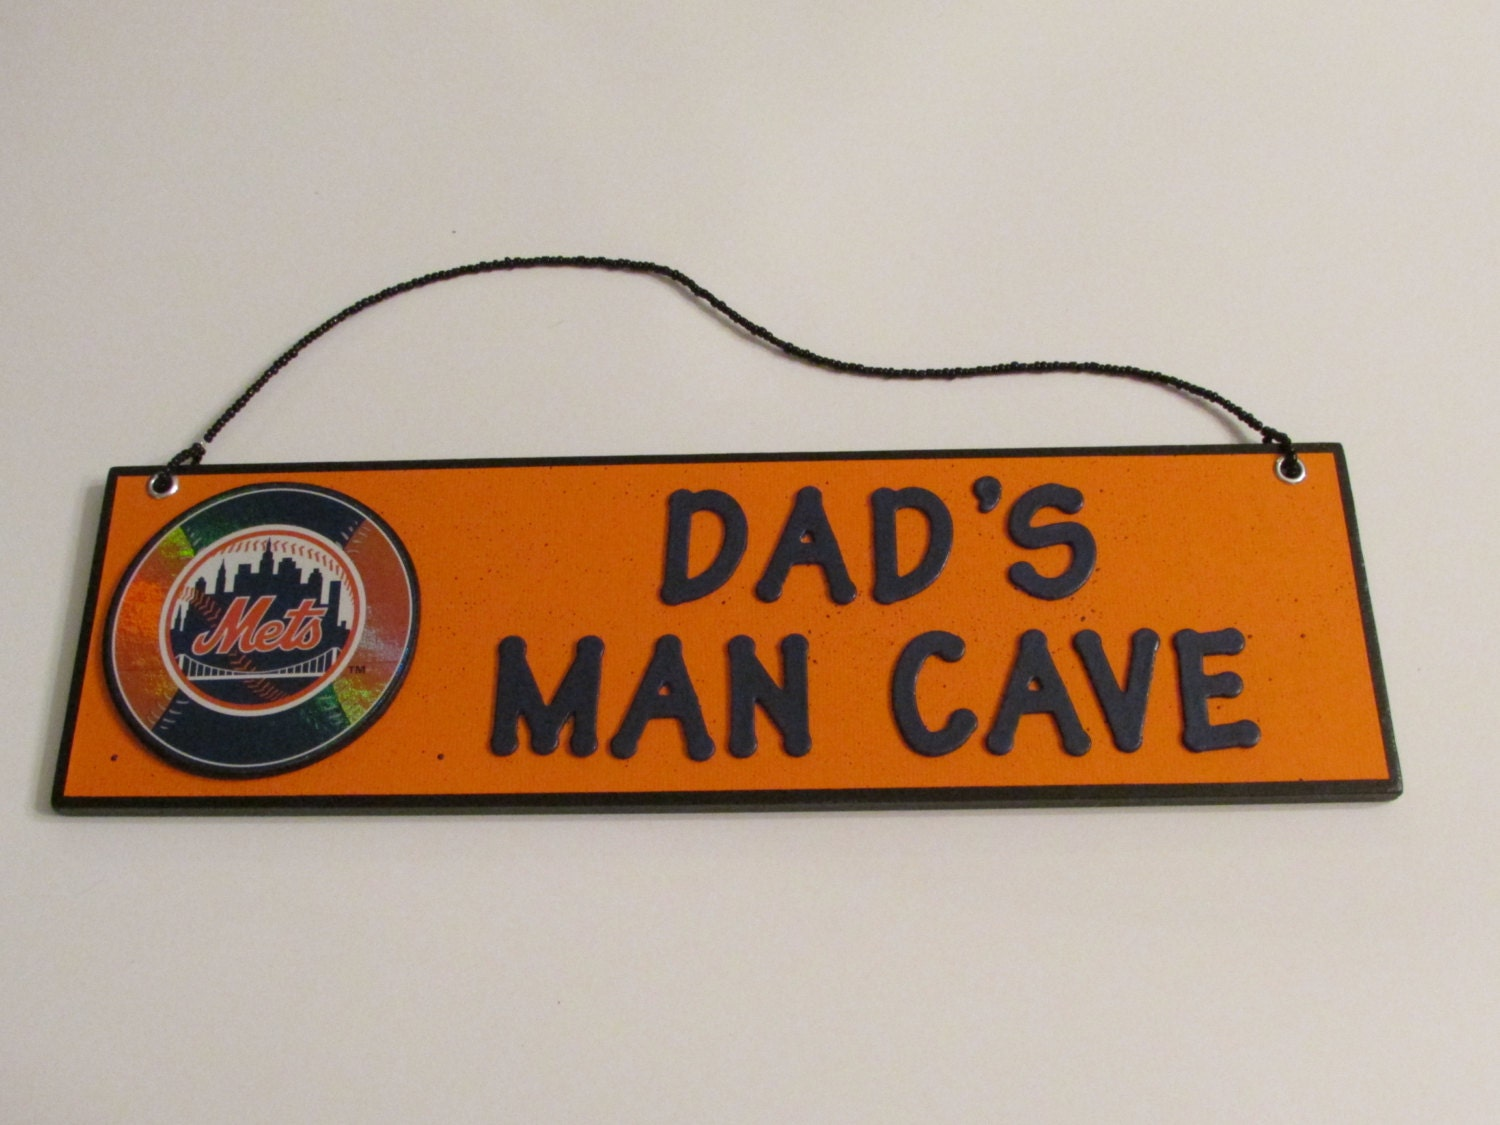 Mlb Man Cave Signs : New york mets baseball dad s man cave sign father